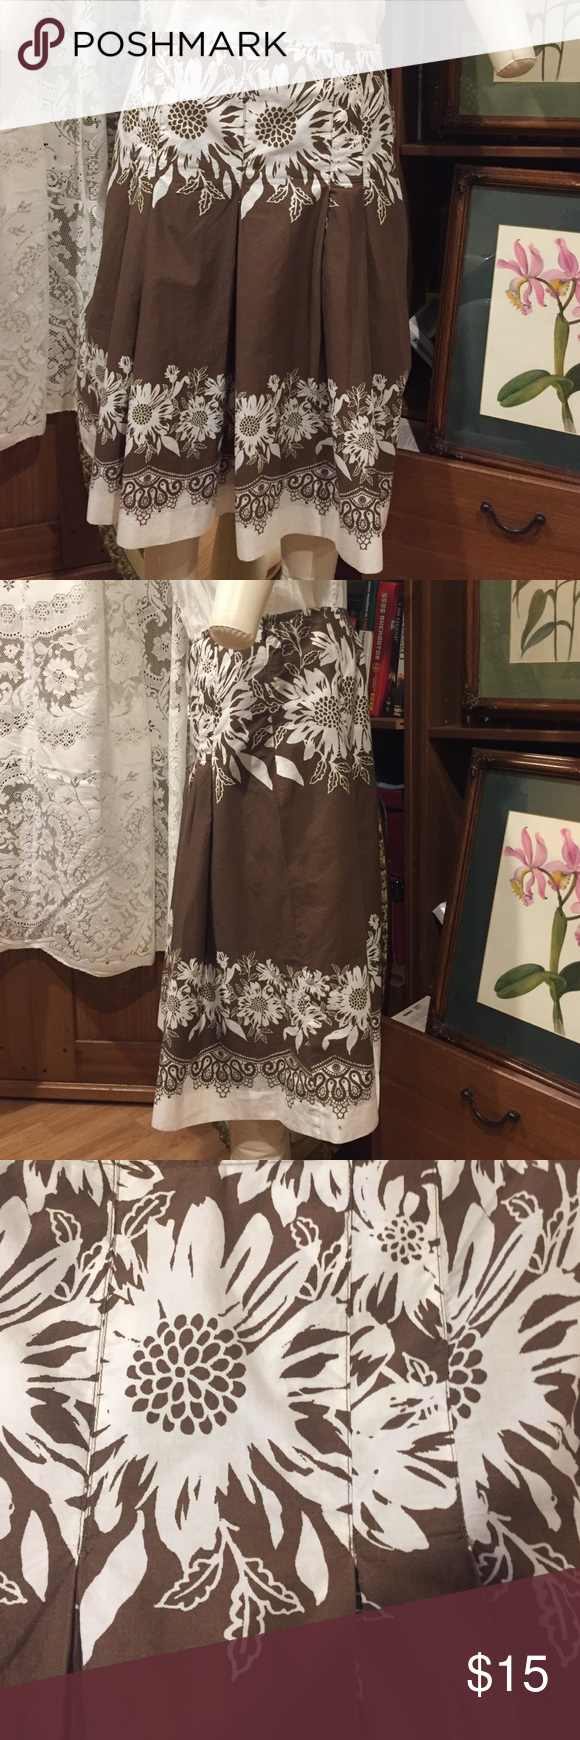 Ann Taylor Loft Brown & White Floral Summer Skirt Ann Taylor Loft Circle Skirt, Color Brown with White Flowers, Size 10, Outer Skirt (shell) is 100% Cotton & Lining is 100% polyester.  This skirt had been worn previously but is in good condition with no apparent rips or stains. Very nice summer or vacation skirt. Please feel free to reach out to me with questions. Ann Taylor Skirts Circle & Skater